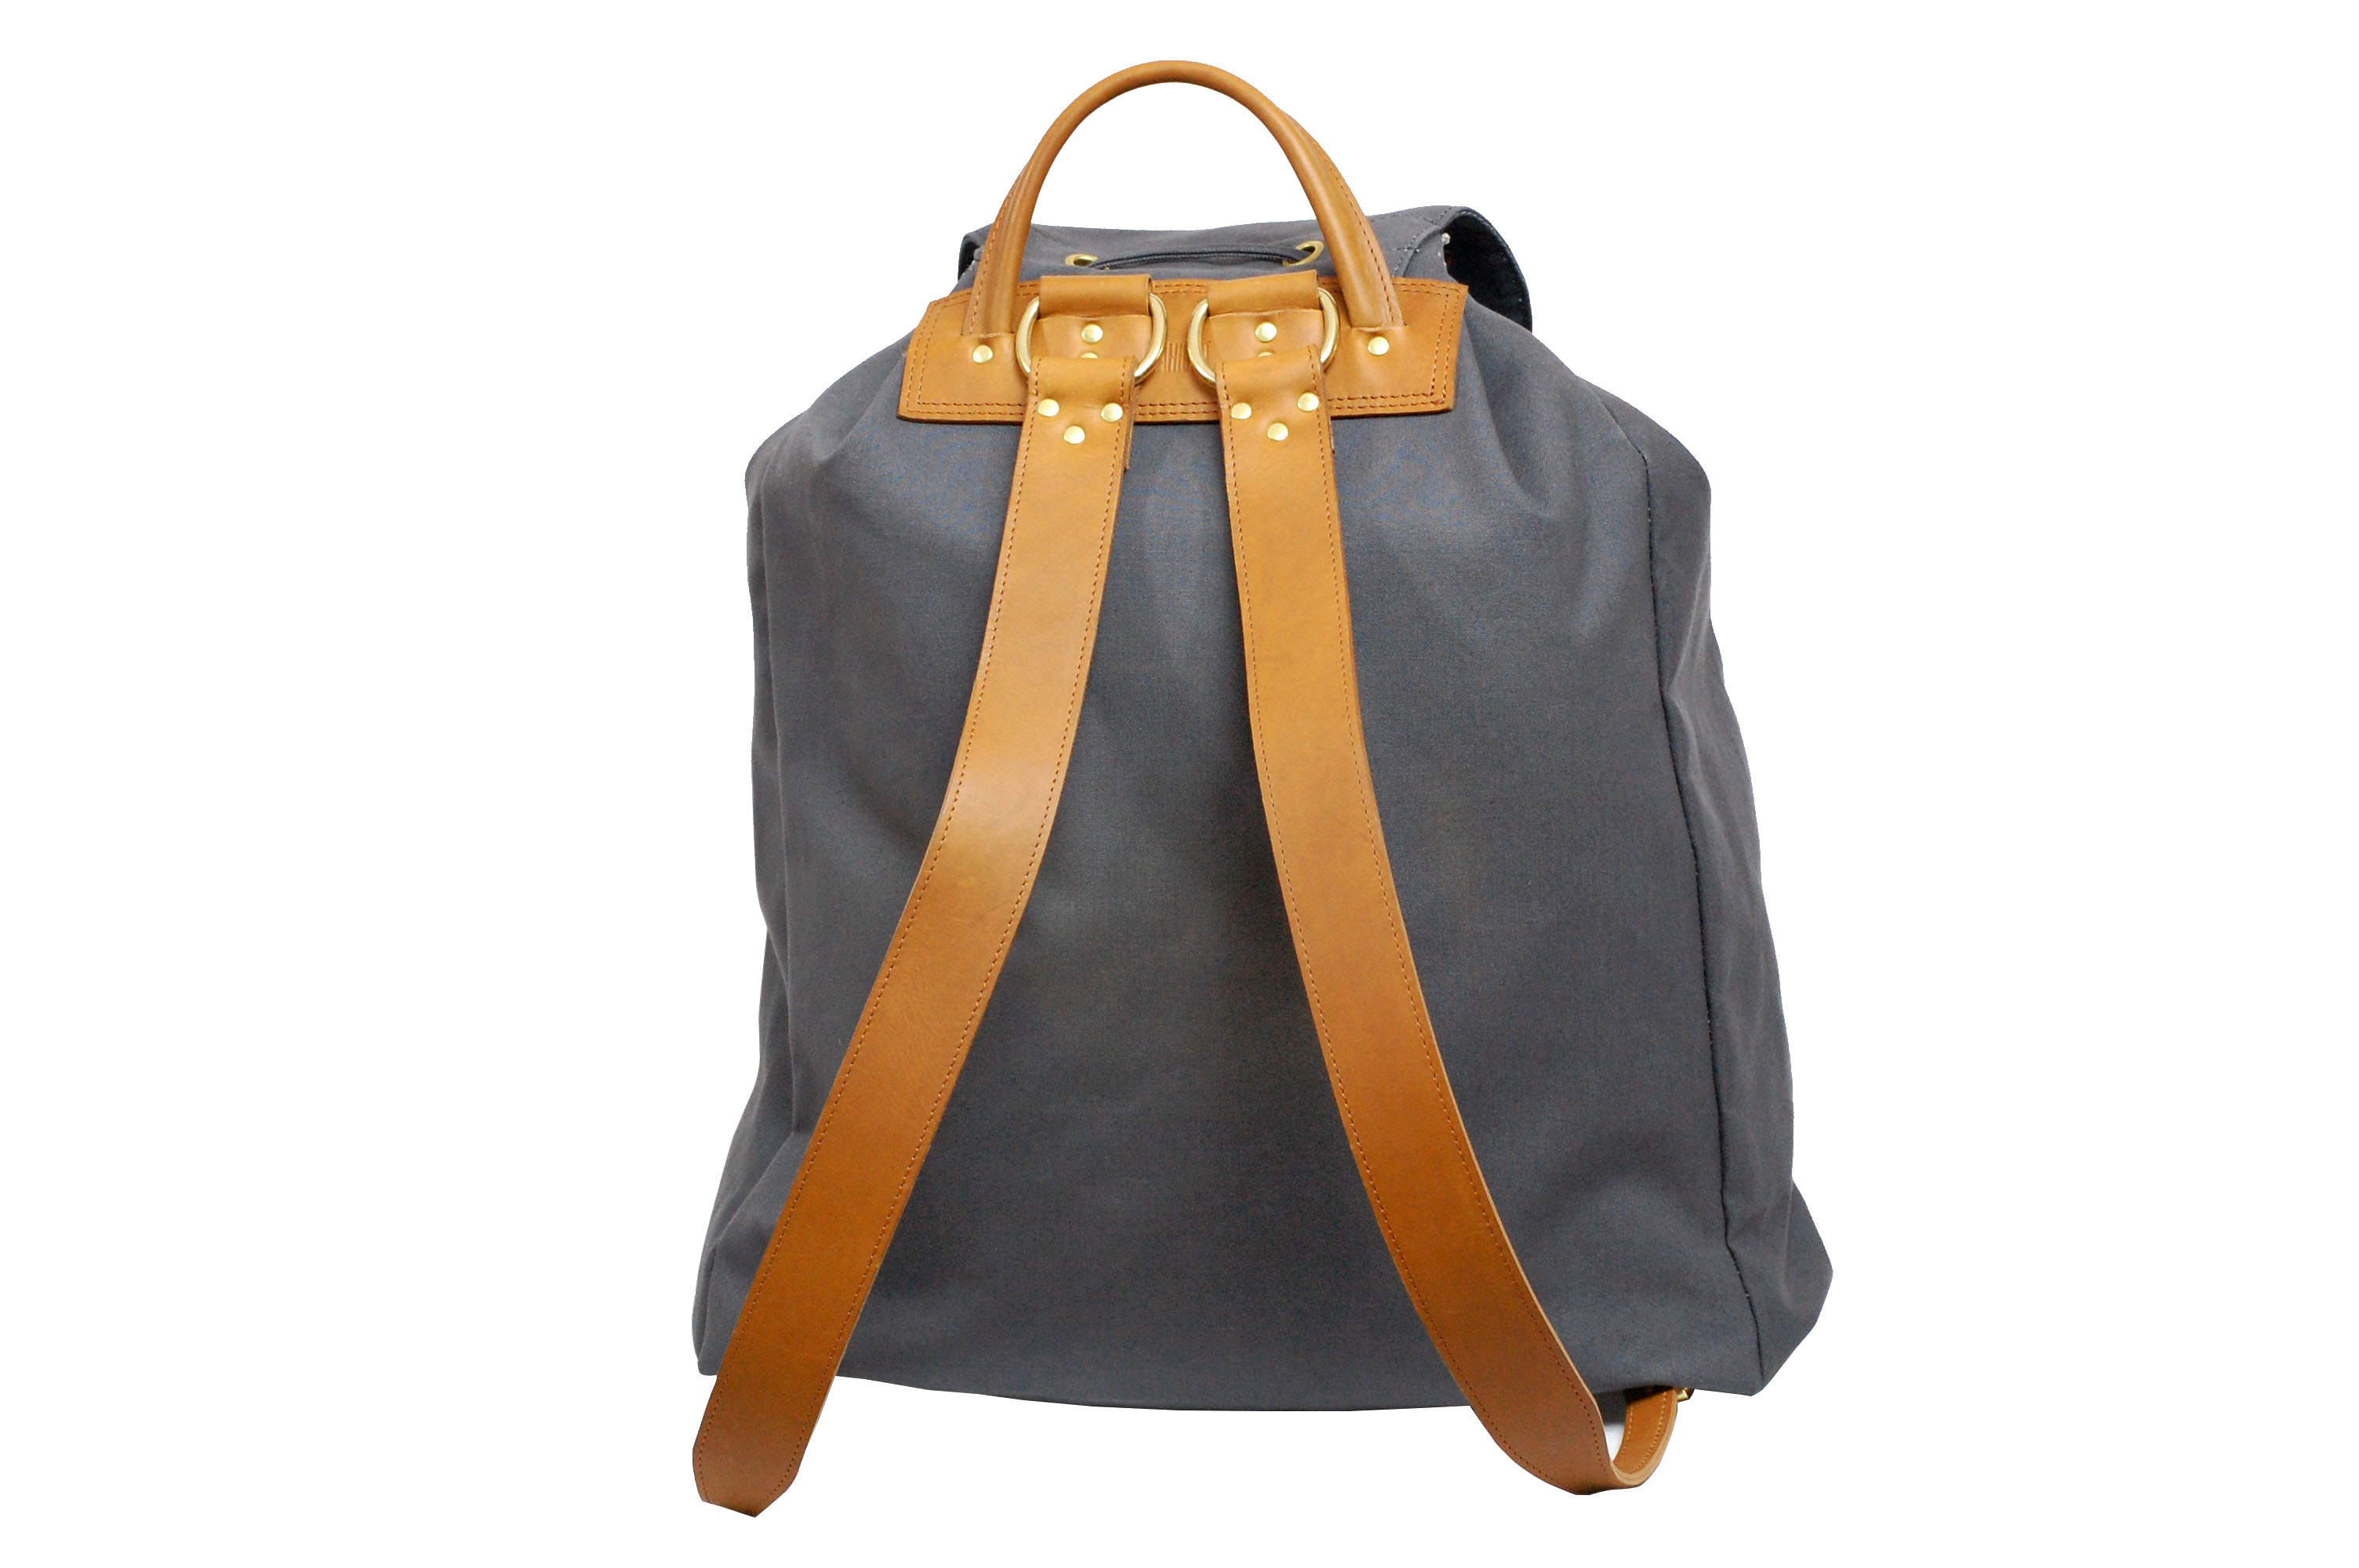 LUMAHIOUT HELRIK BACKPACK IN CANVAS AND LEATHER, LUXURY DESIGNER BACKPACK